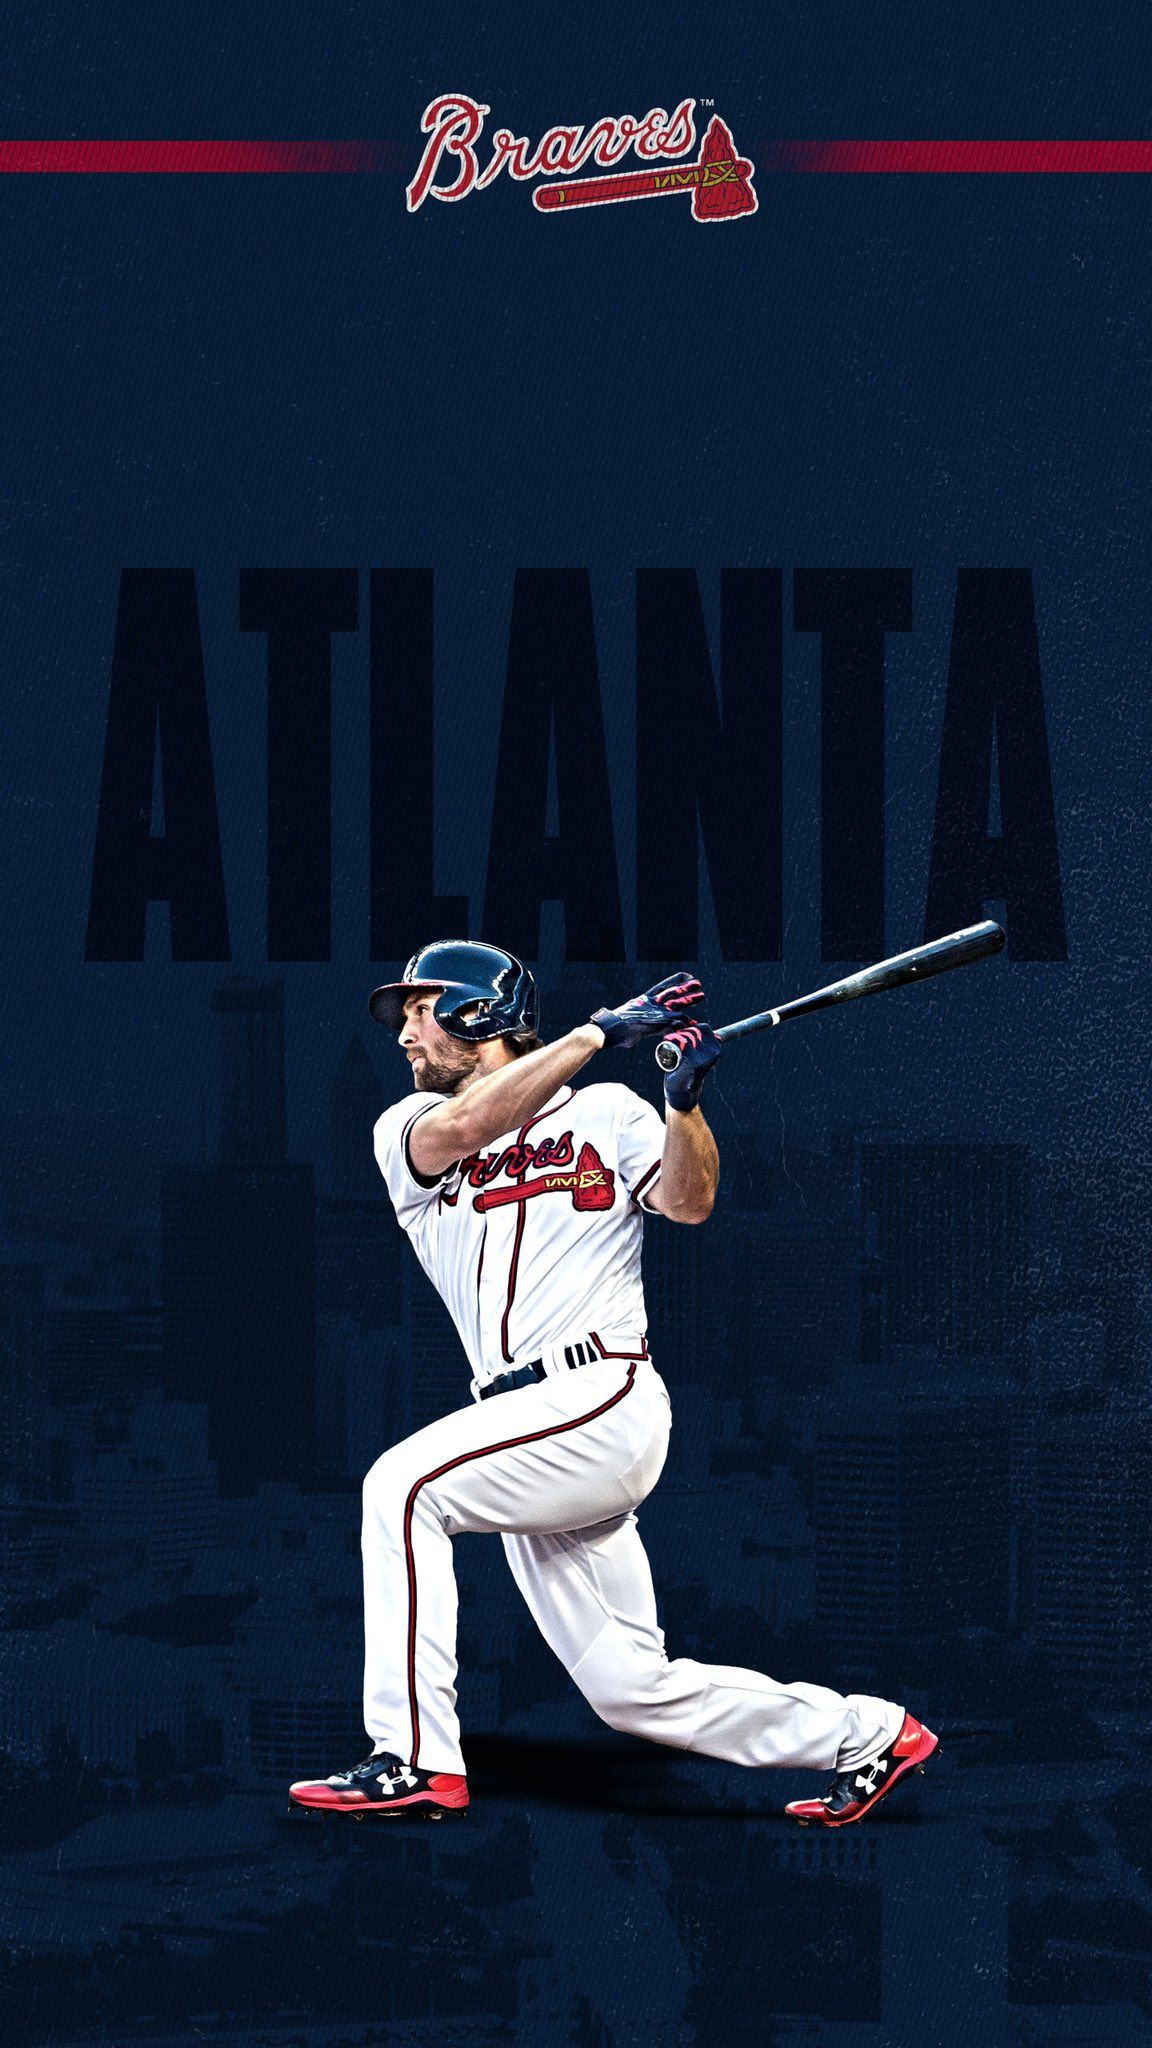 Atlanta Braves On Twitter Atlanta Braves Braves Braves Baseball